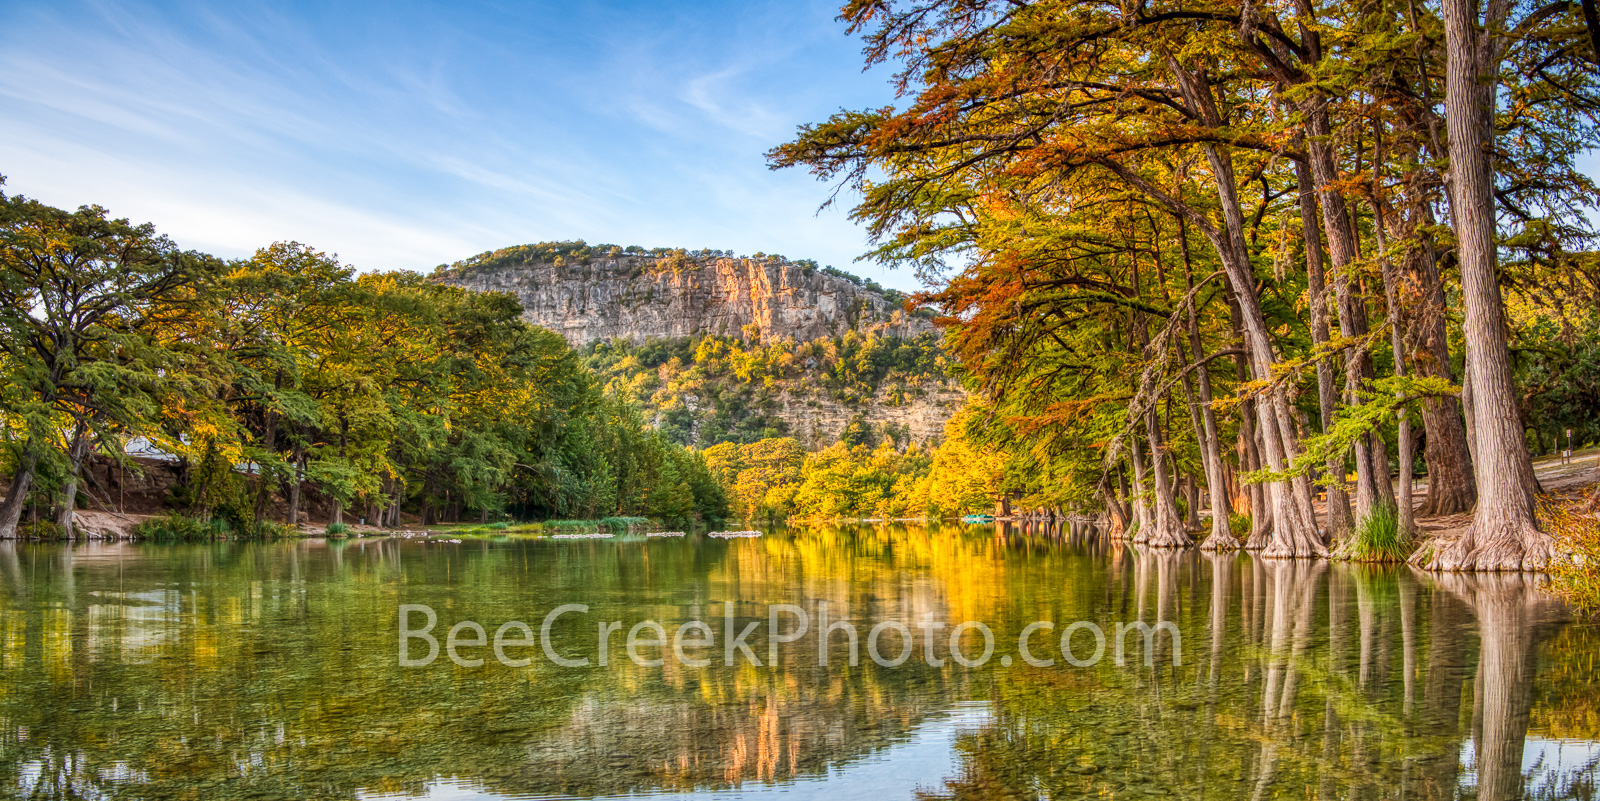 Garner State Park, Frio River, autumn, bald cypress, texas hill country, fall, old baldy, river, water, reflections, golden, rusty, cypress, hill country, pano, panorama,, photo